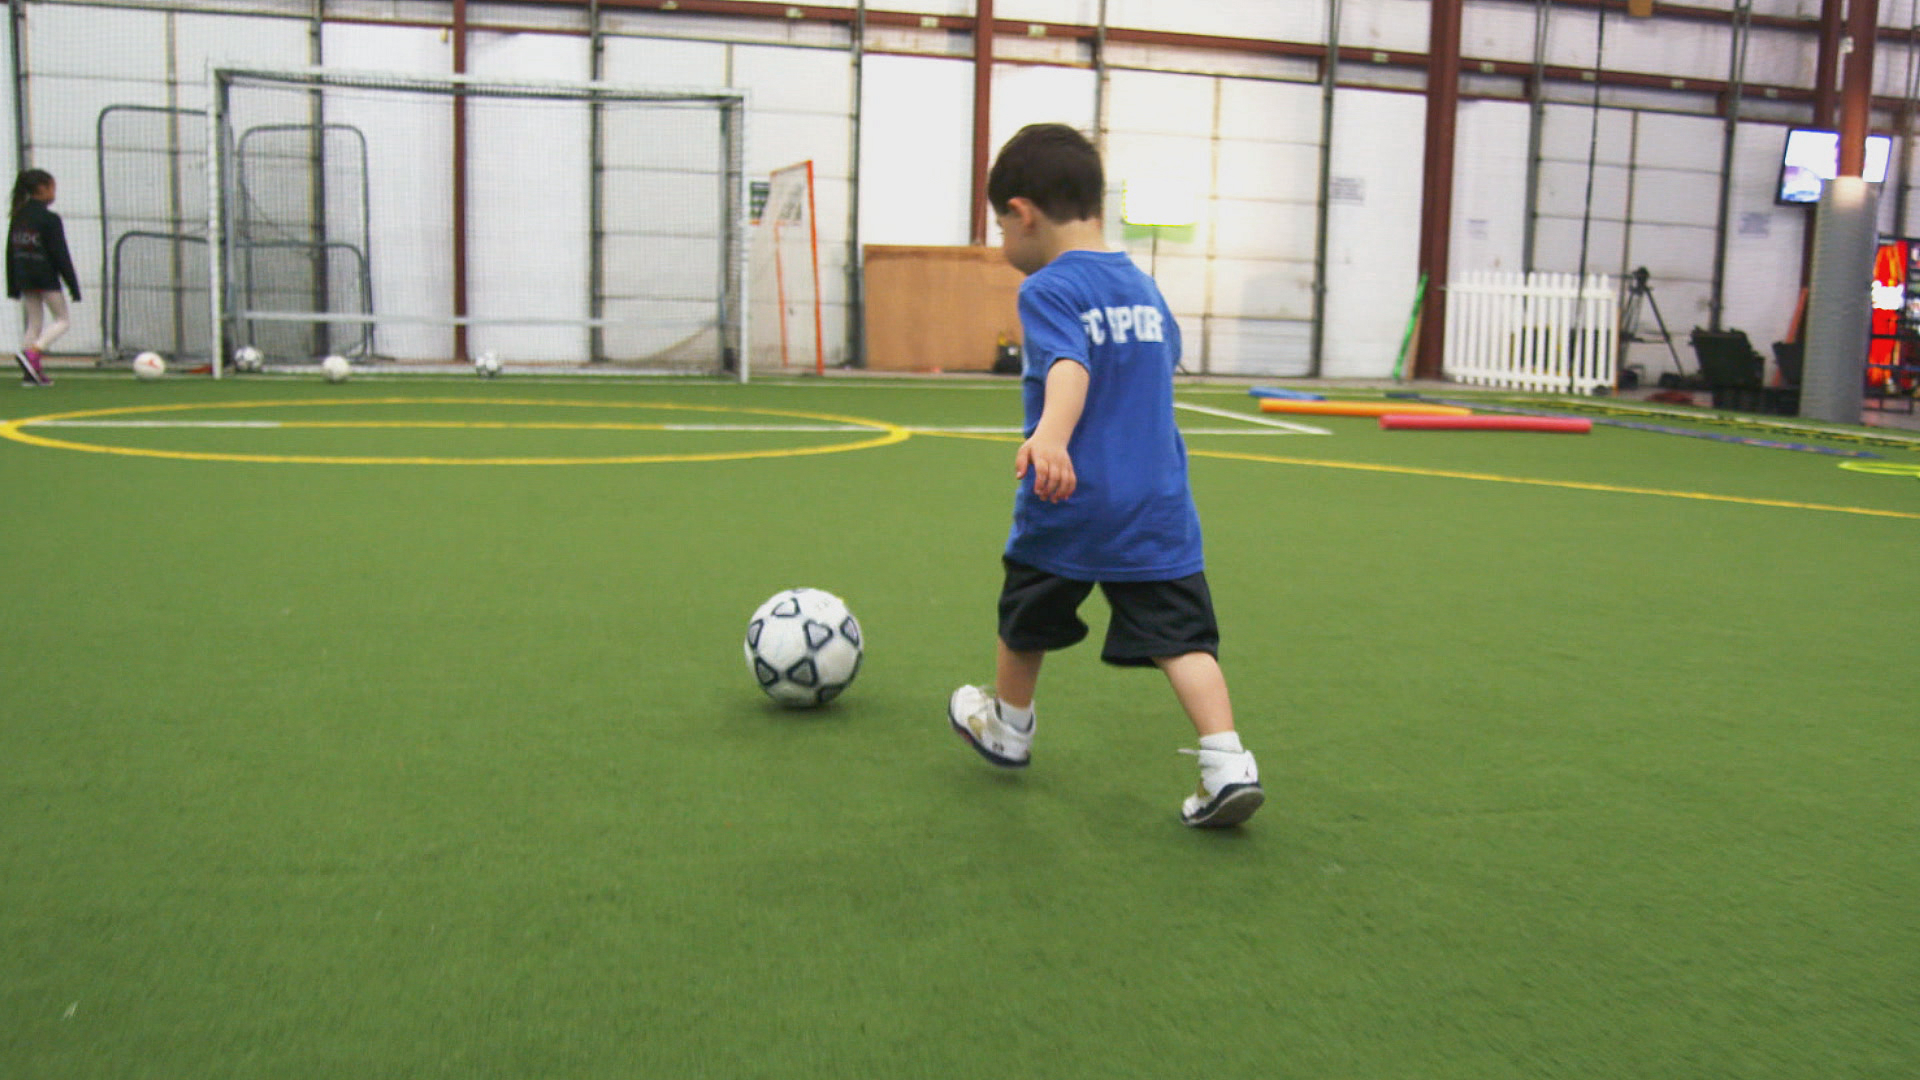 Young boy dribbling (2).jpg